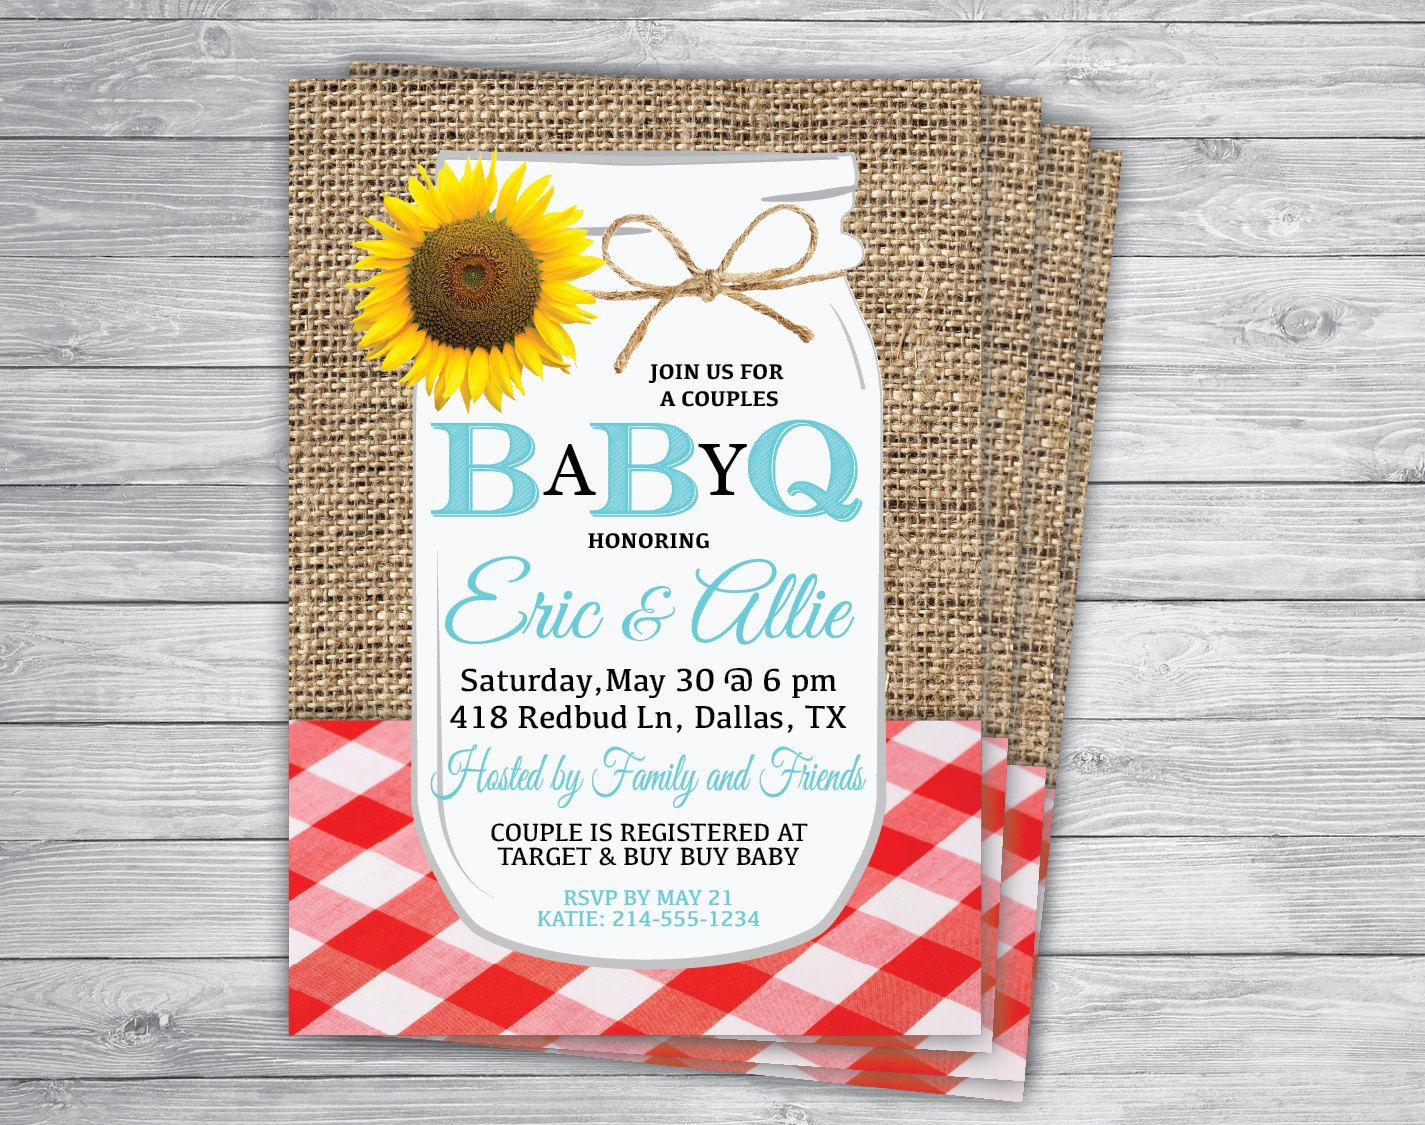 BABY Q BBQ Gingham Shower Country Mason Jar Burlap Sunflower Rustic Burlap  Vintage Engagement Rehearsal Barbecue